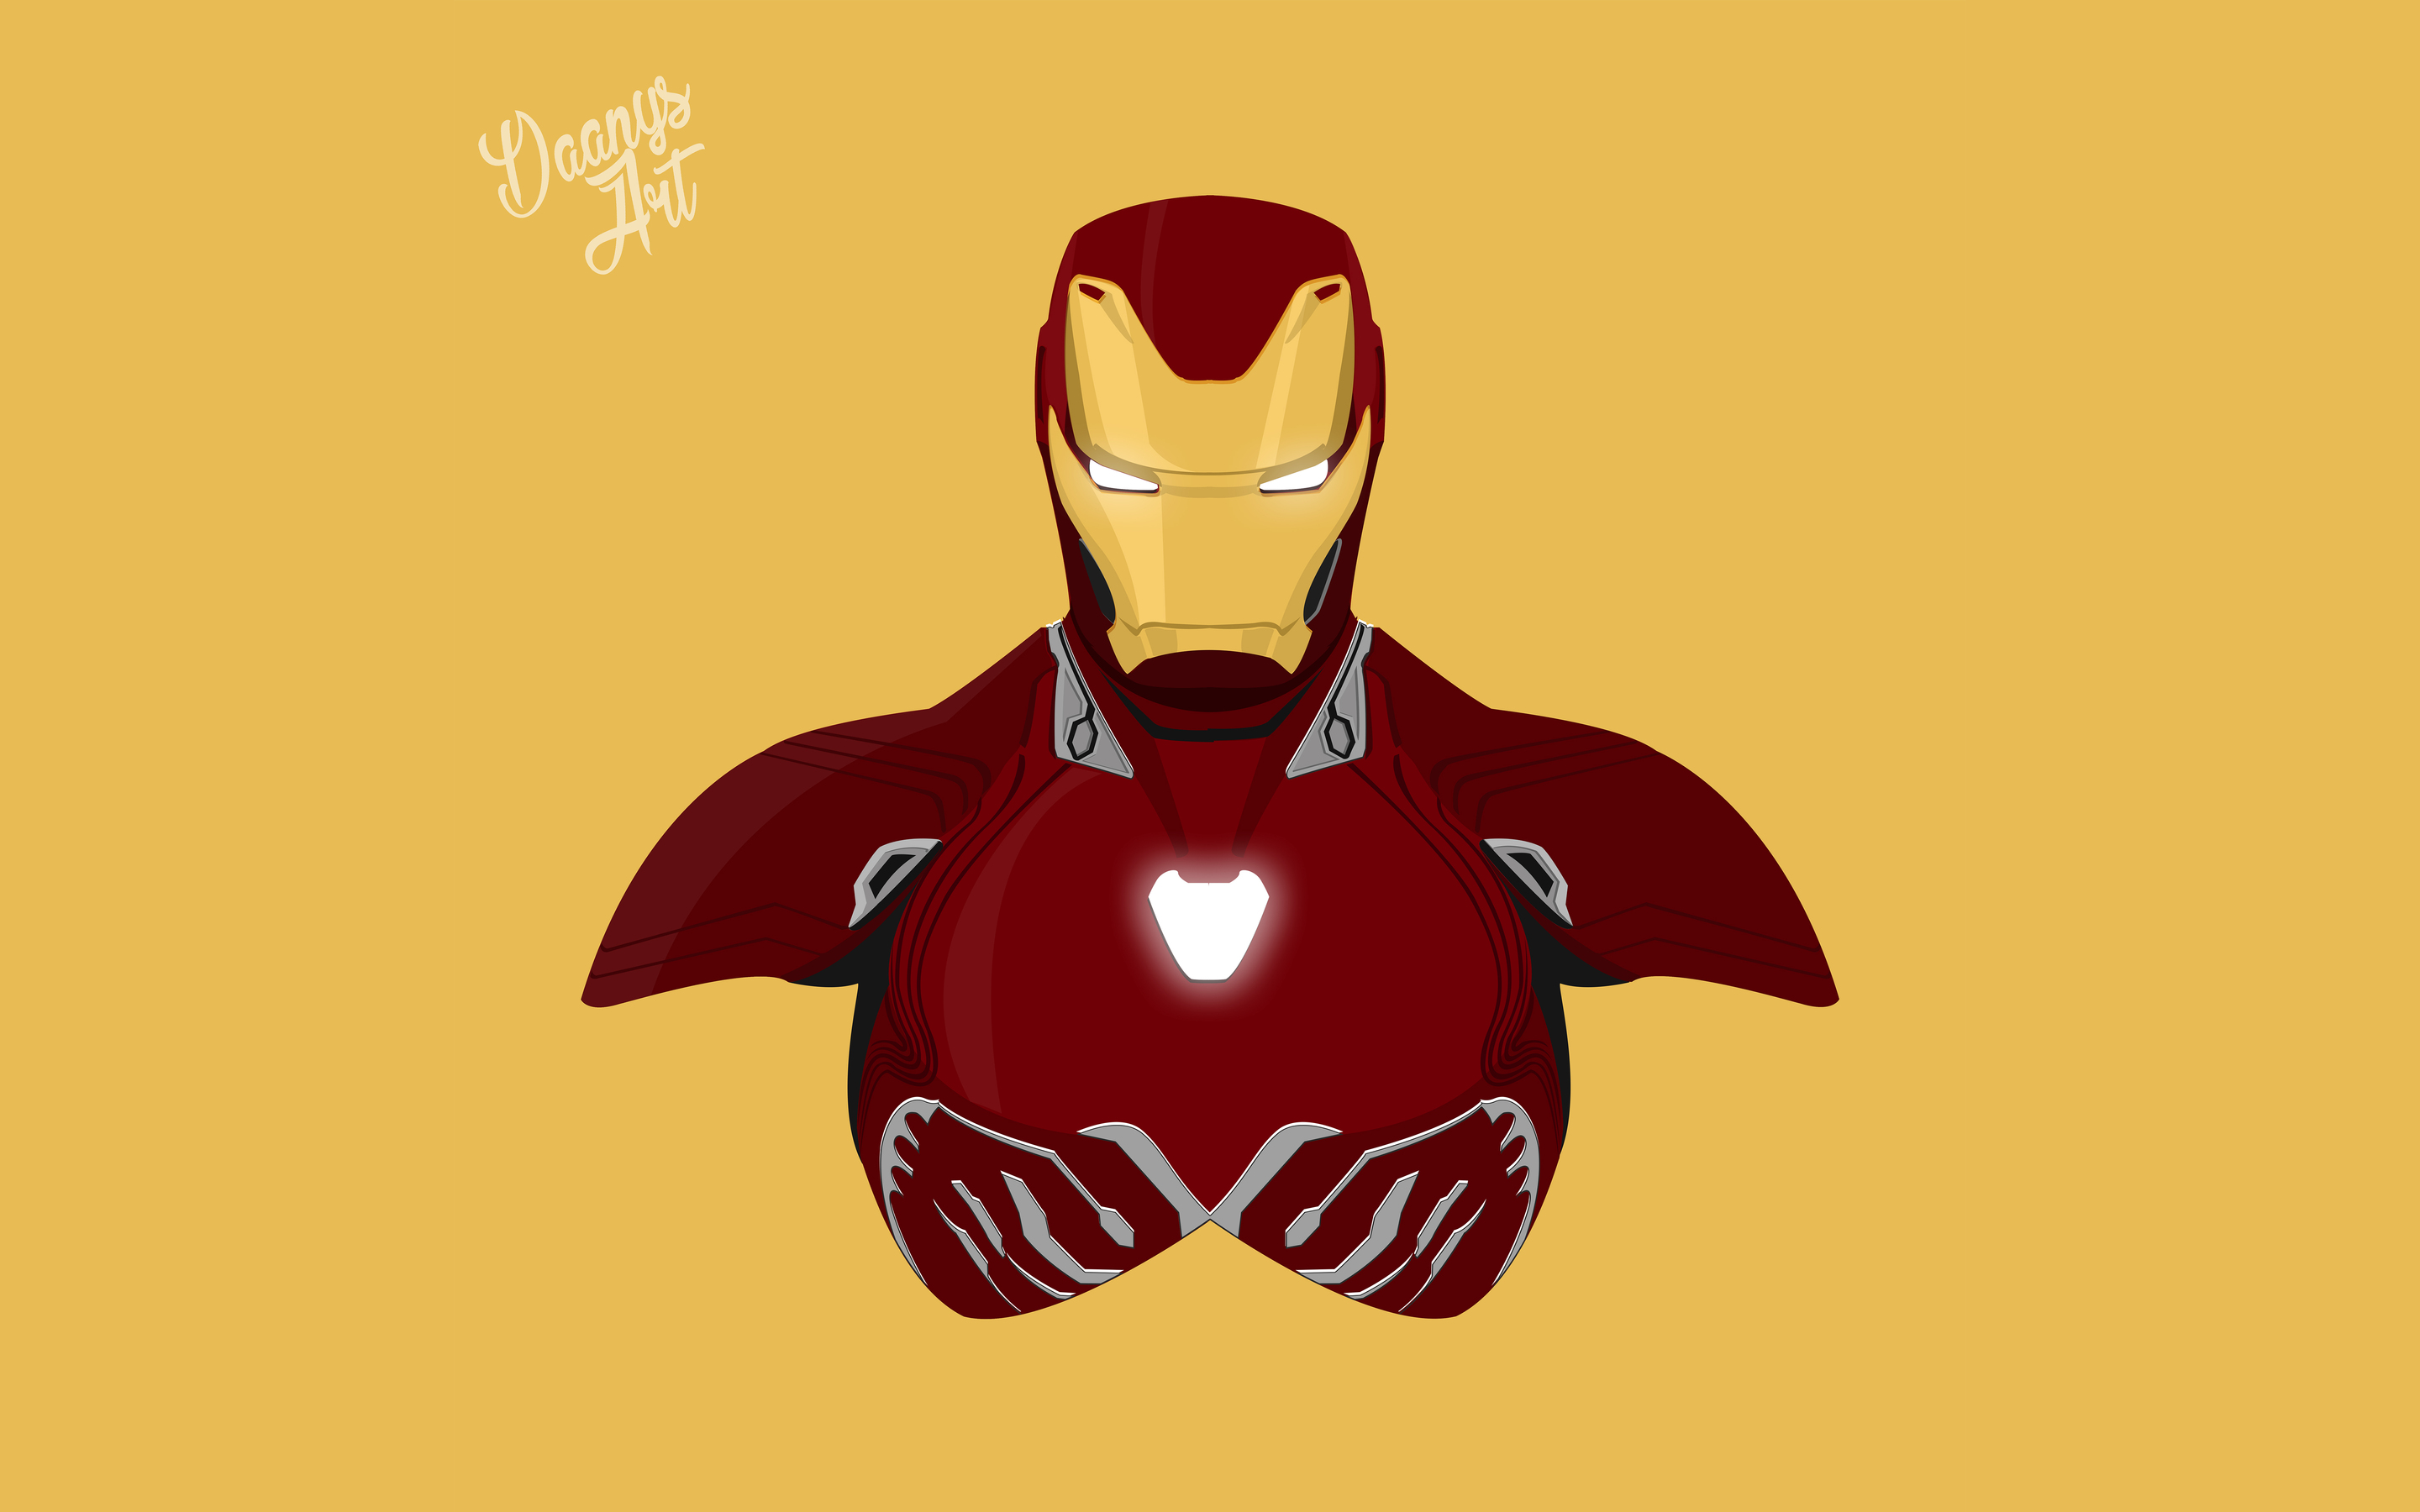 Fantastic Wallpaper Marvel Macbook - iron-man-avengers-infinity-war-2018-minimalism-8k-k7-2880x1800  Pic_803376.jpg